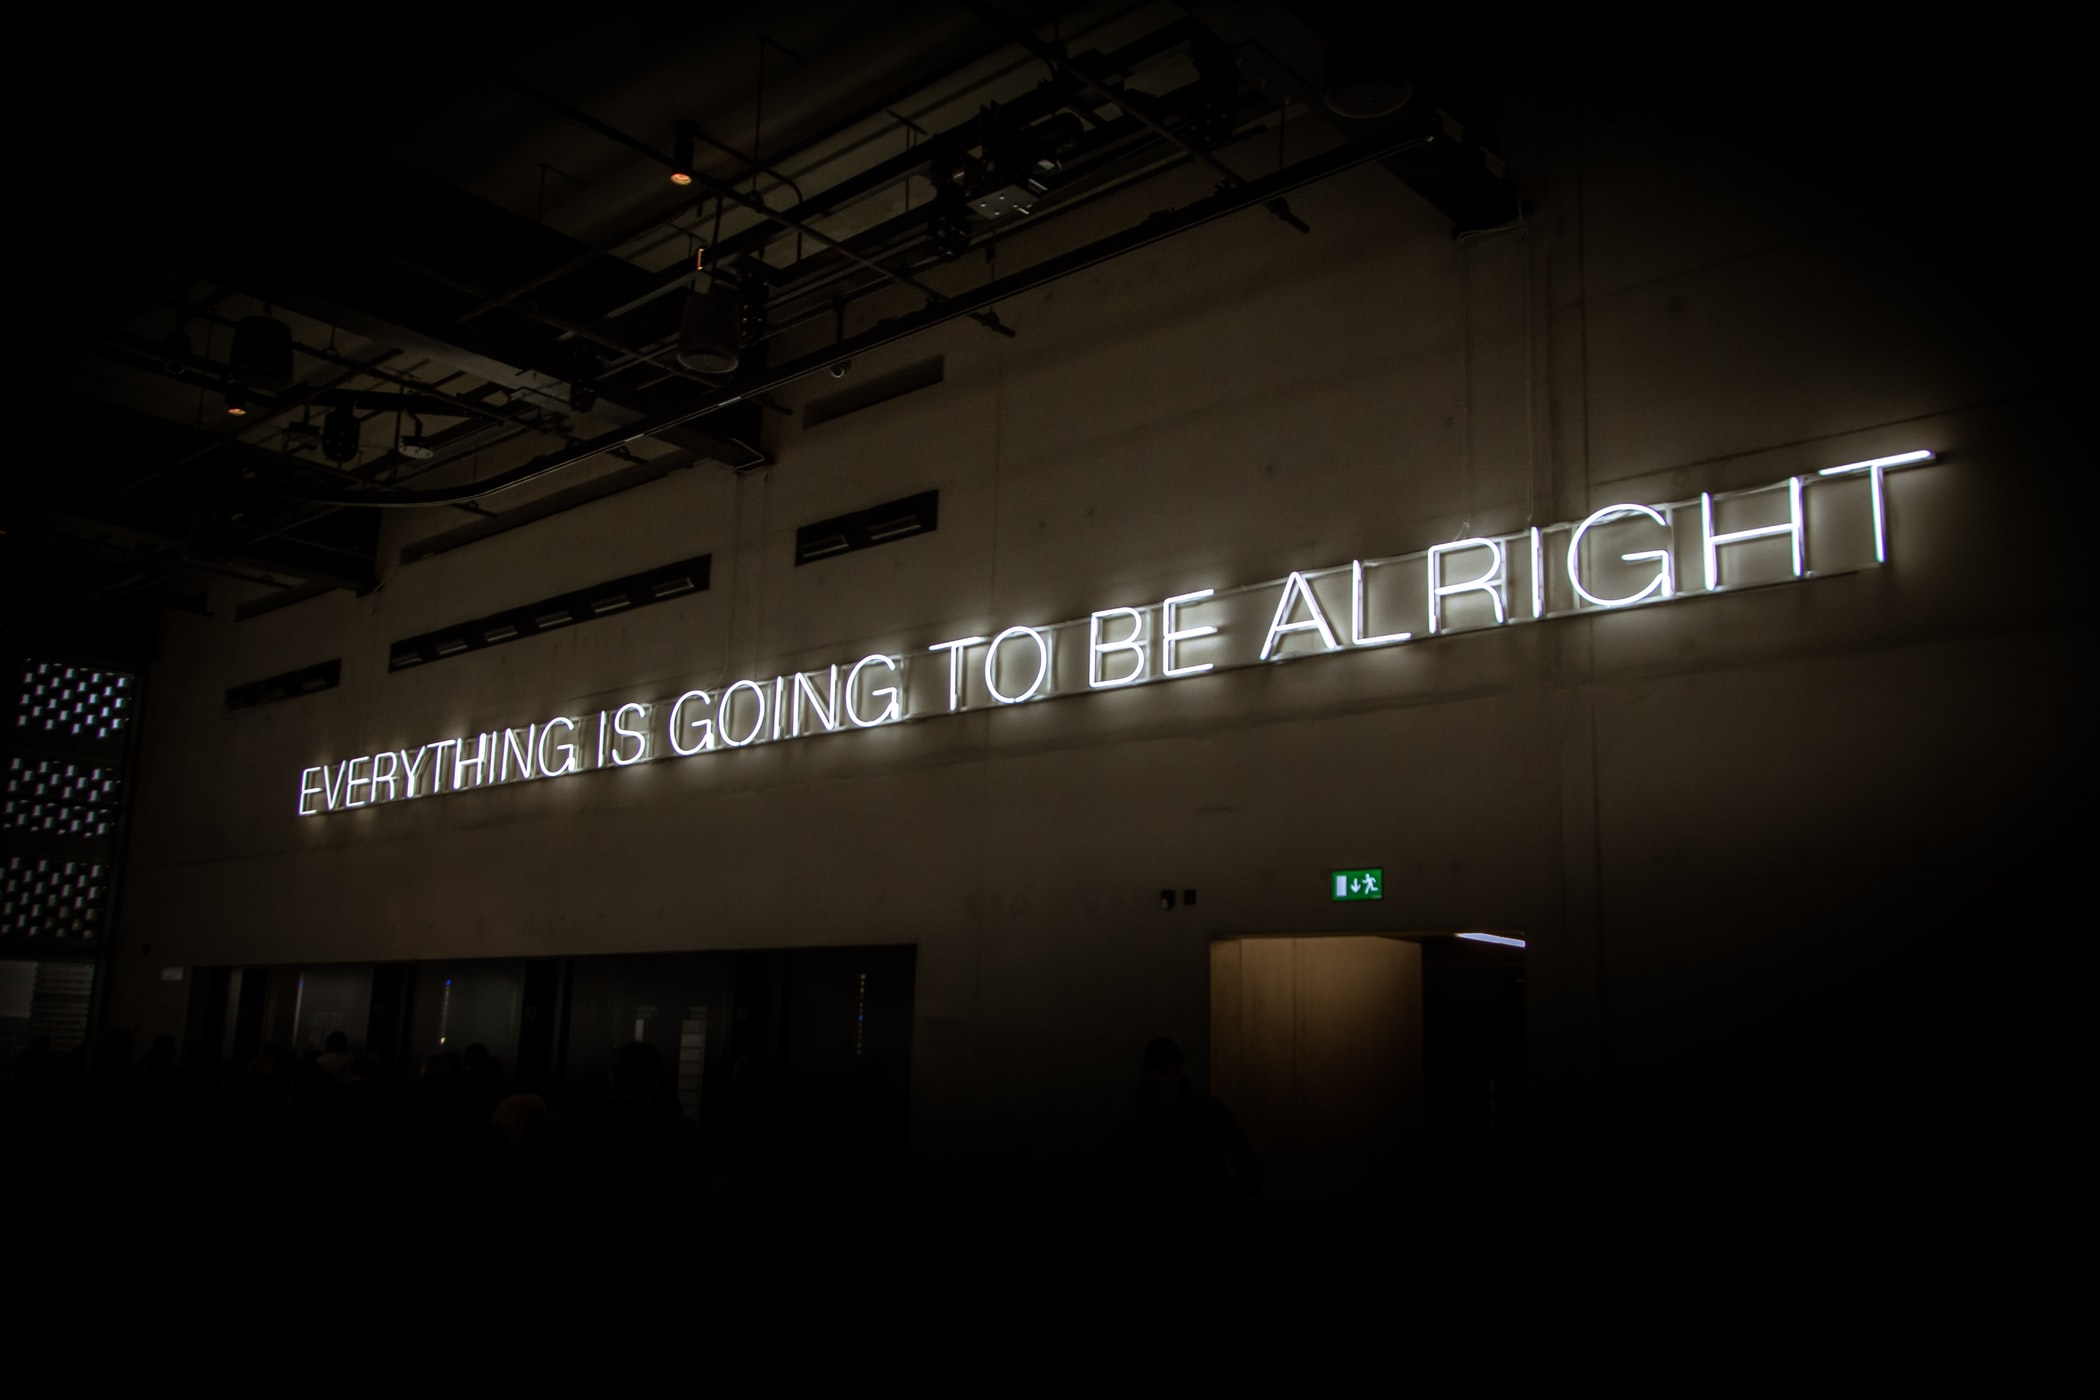 neon sign that reads 'everything is going to be alright'